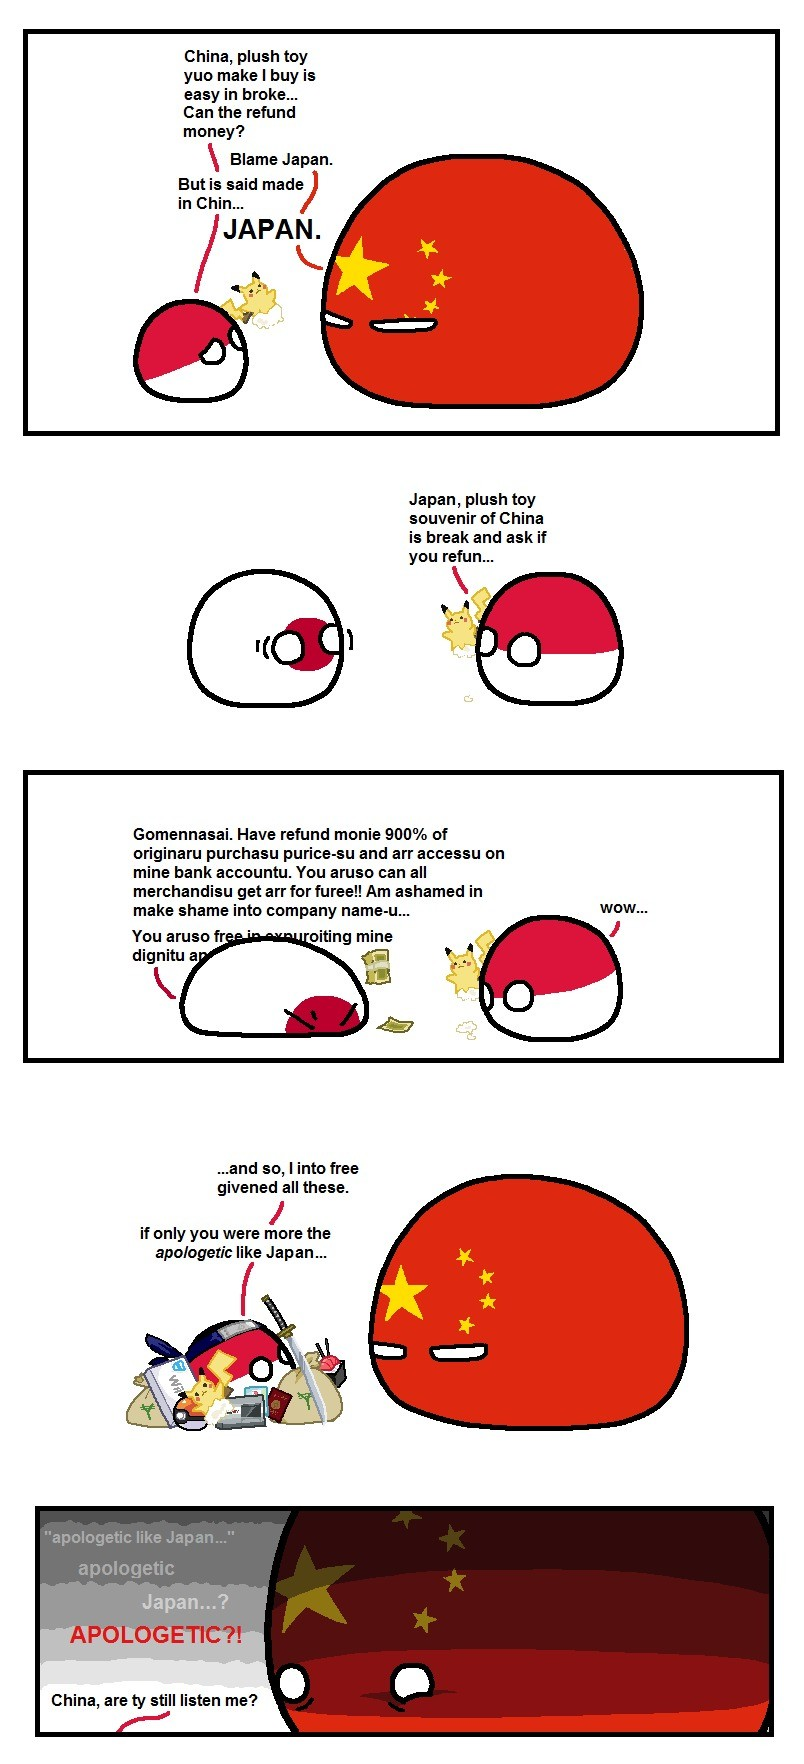 Credit China, Blame Japan. r/polandball (u/taongkalye) shouldallbemorelikejapan/.. wait really? japan apologizes from broken cheap Chinese ? i mean i know they go through a lot to save face when they up at least culturally.